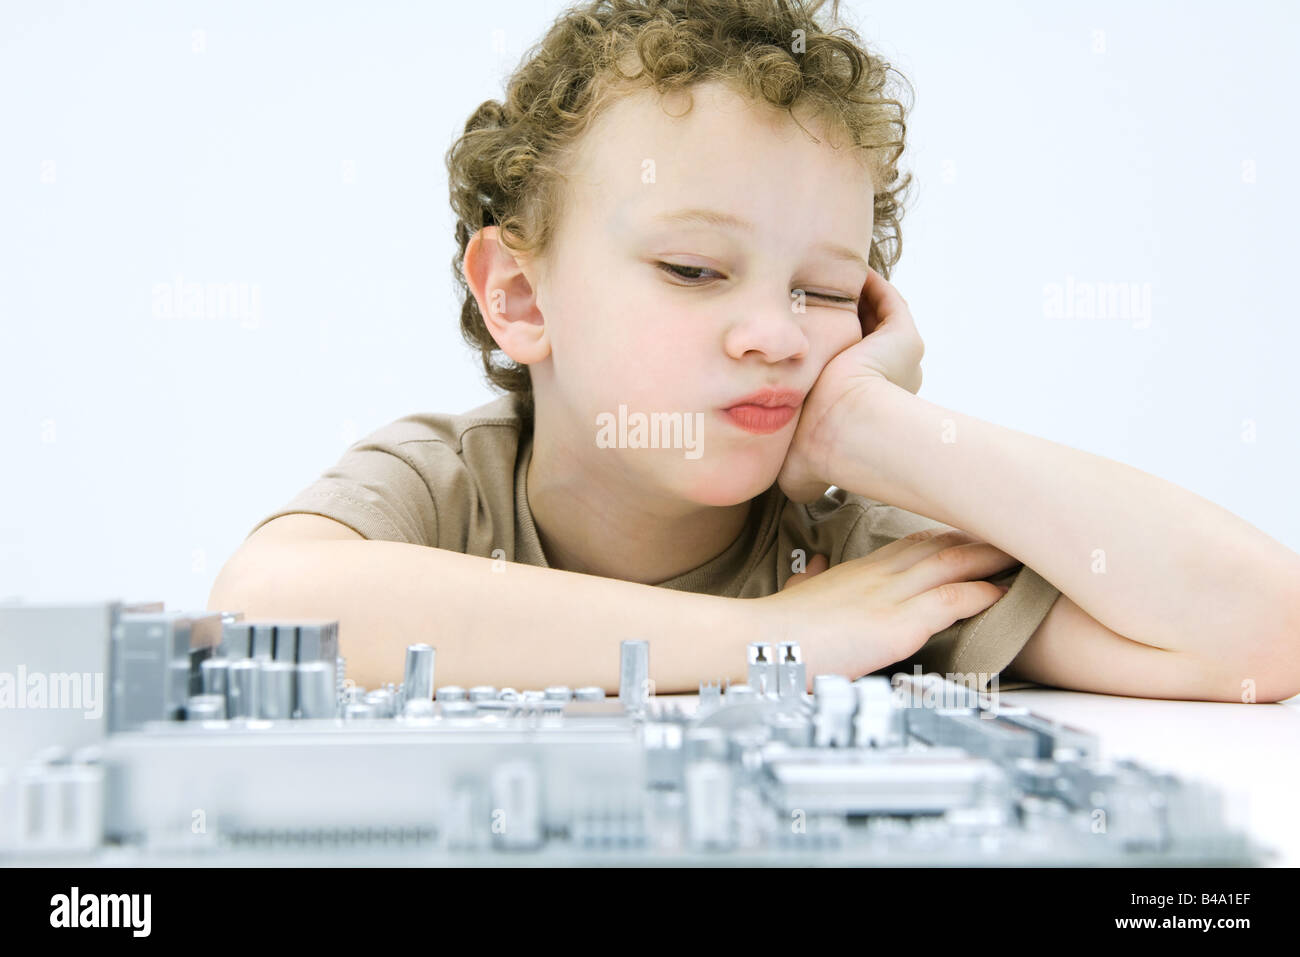 Little boy leaning on elbow, contemplating computer motherboard - Stock Image